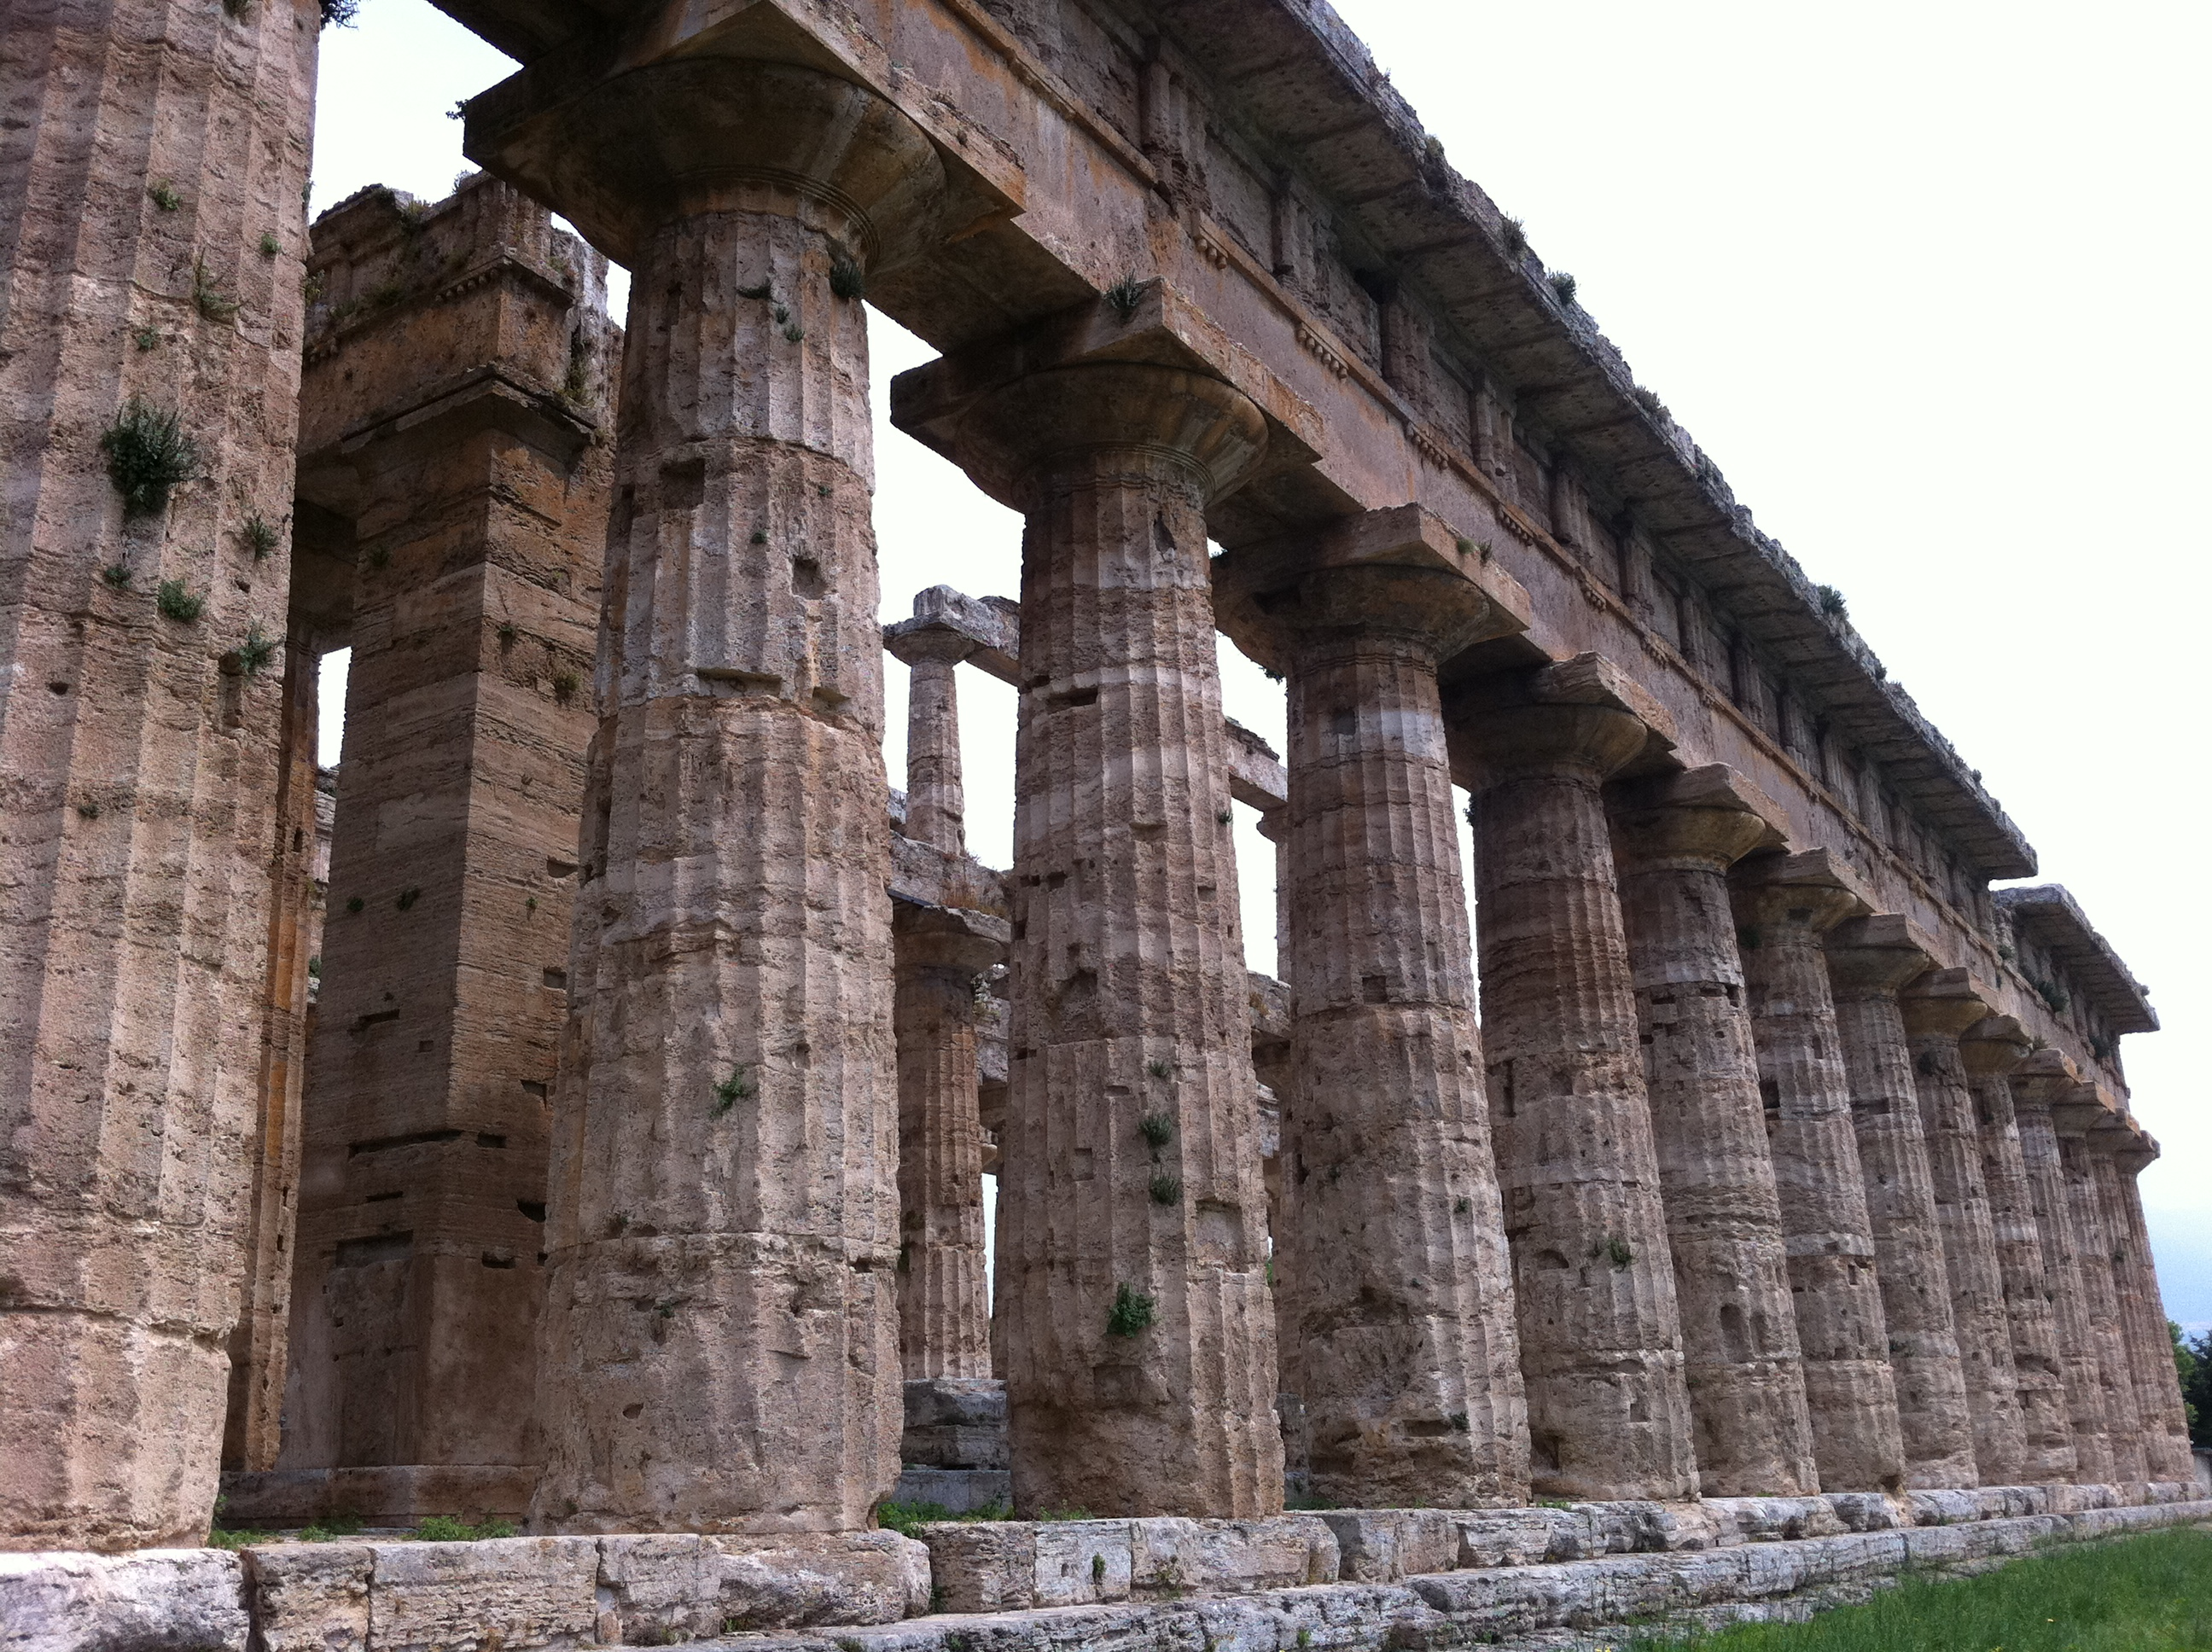 Temple of Neptune at Paestum